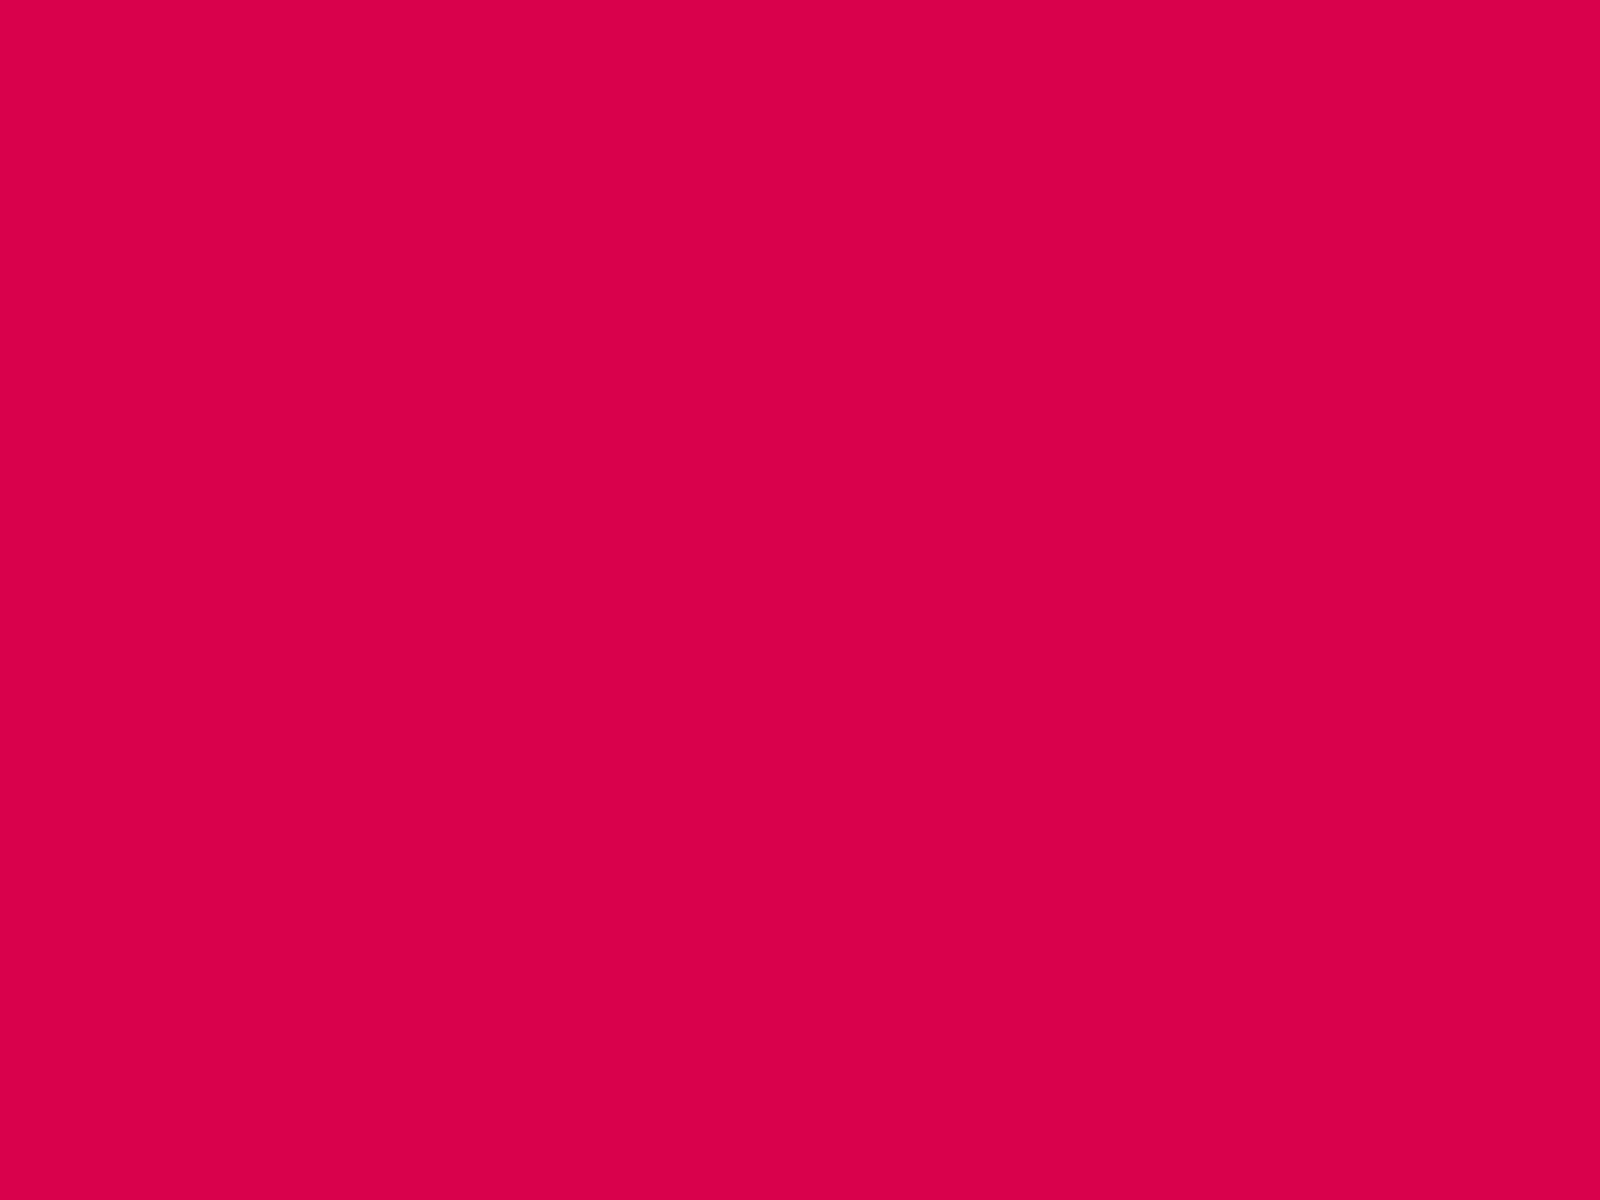 1600x1200 UA Red Solid Color Background